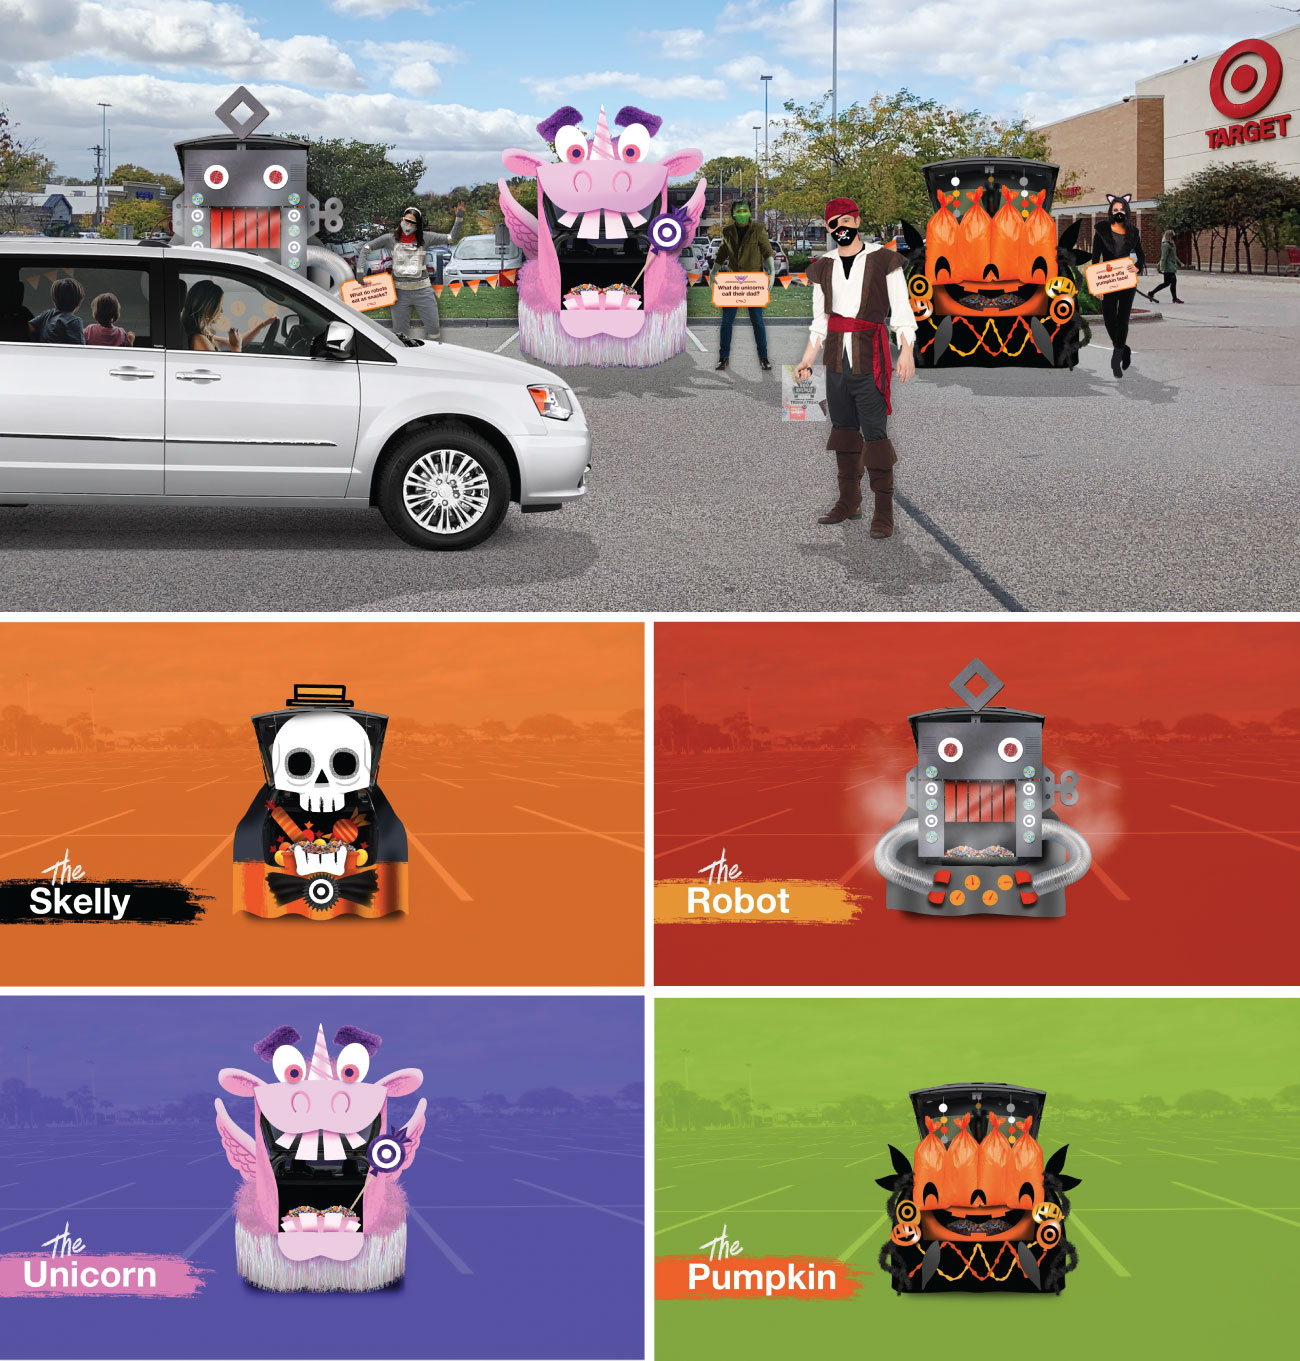 A photo collage shows a white car driving through a Target parking lot with decorated cars and people in costume, followed by close-up illustrations of four car characters.